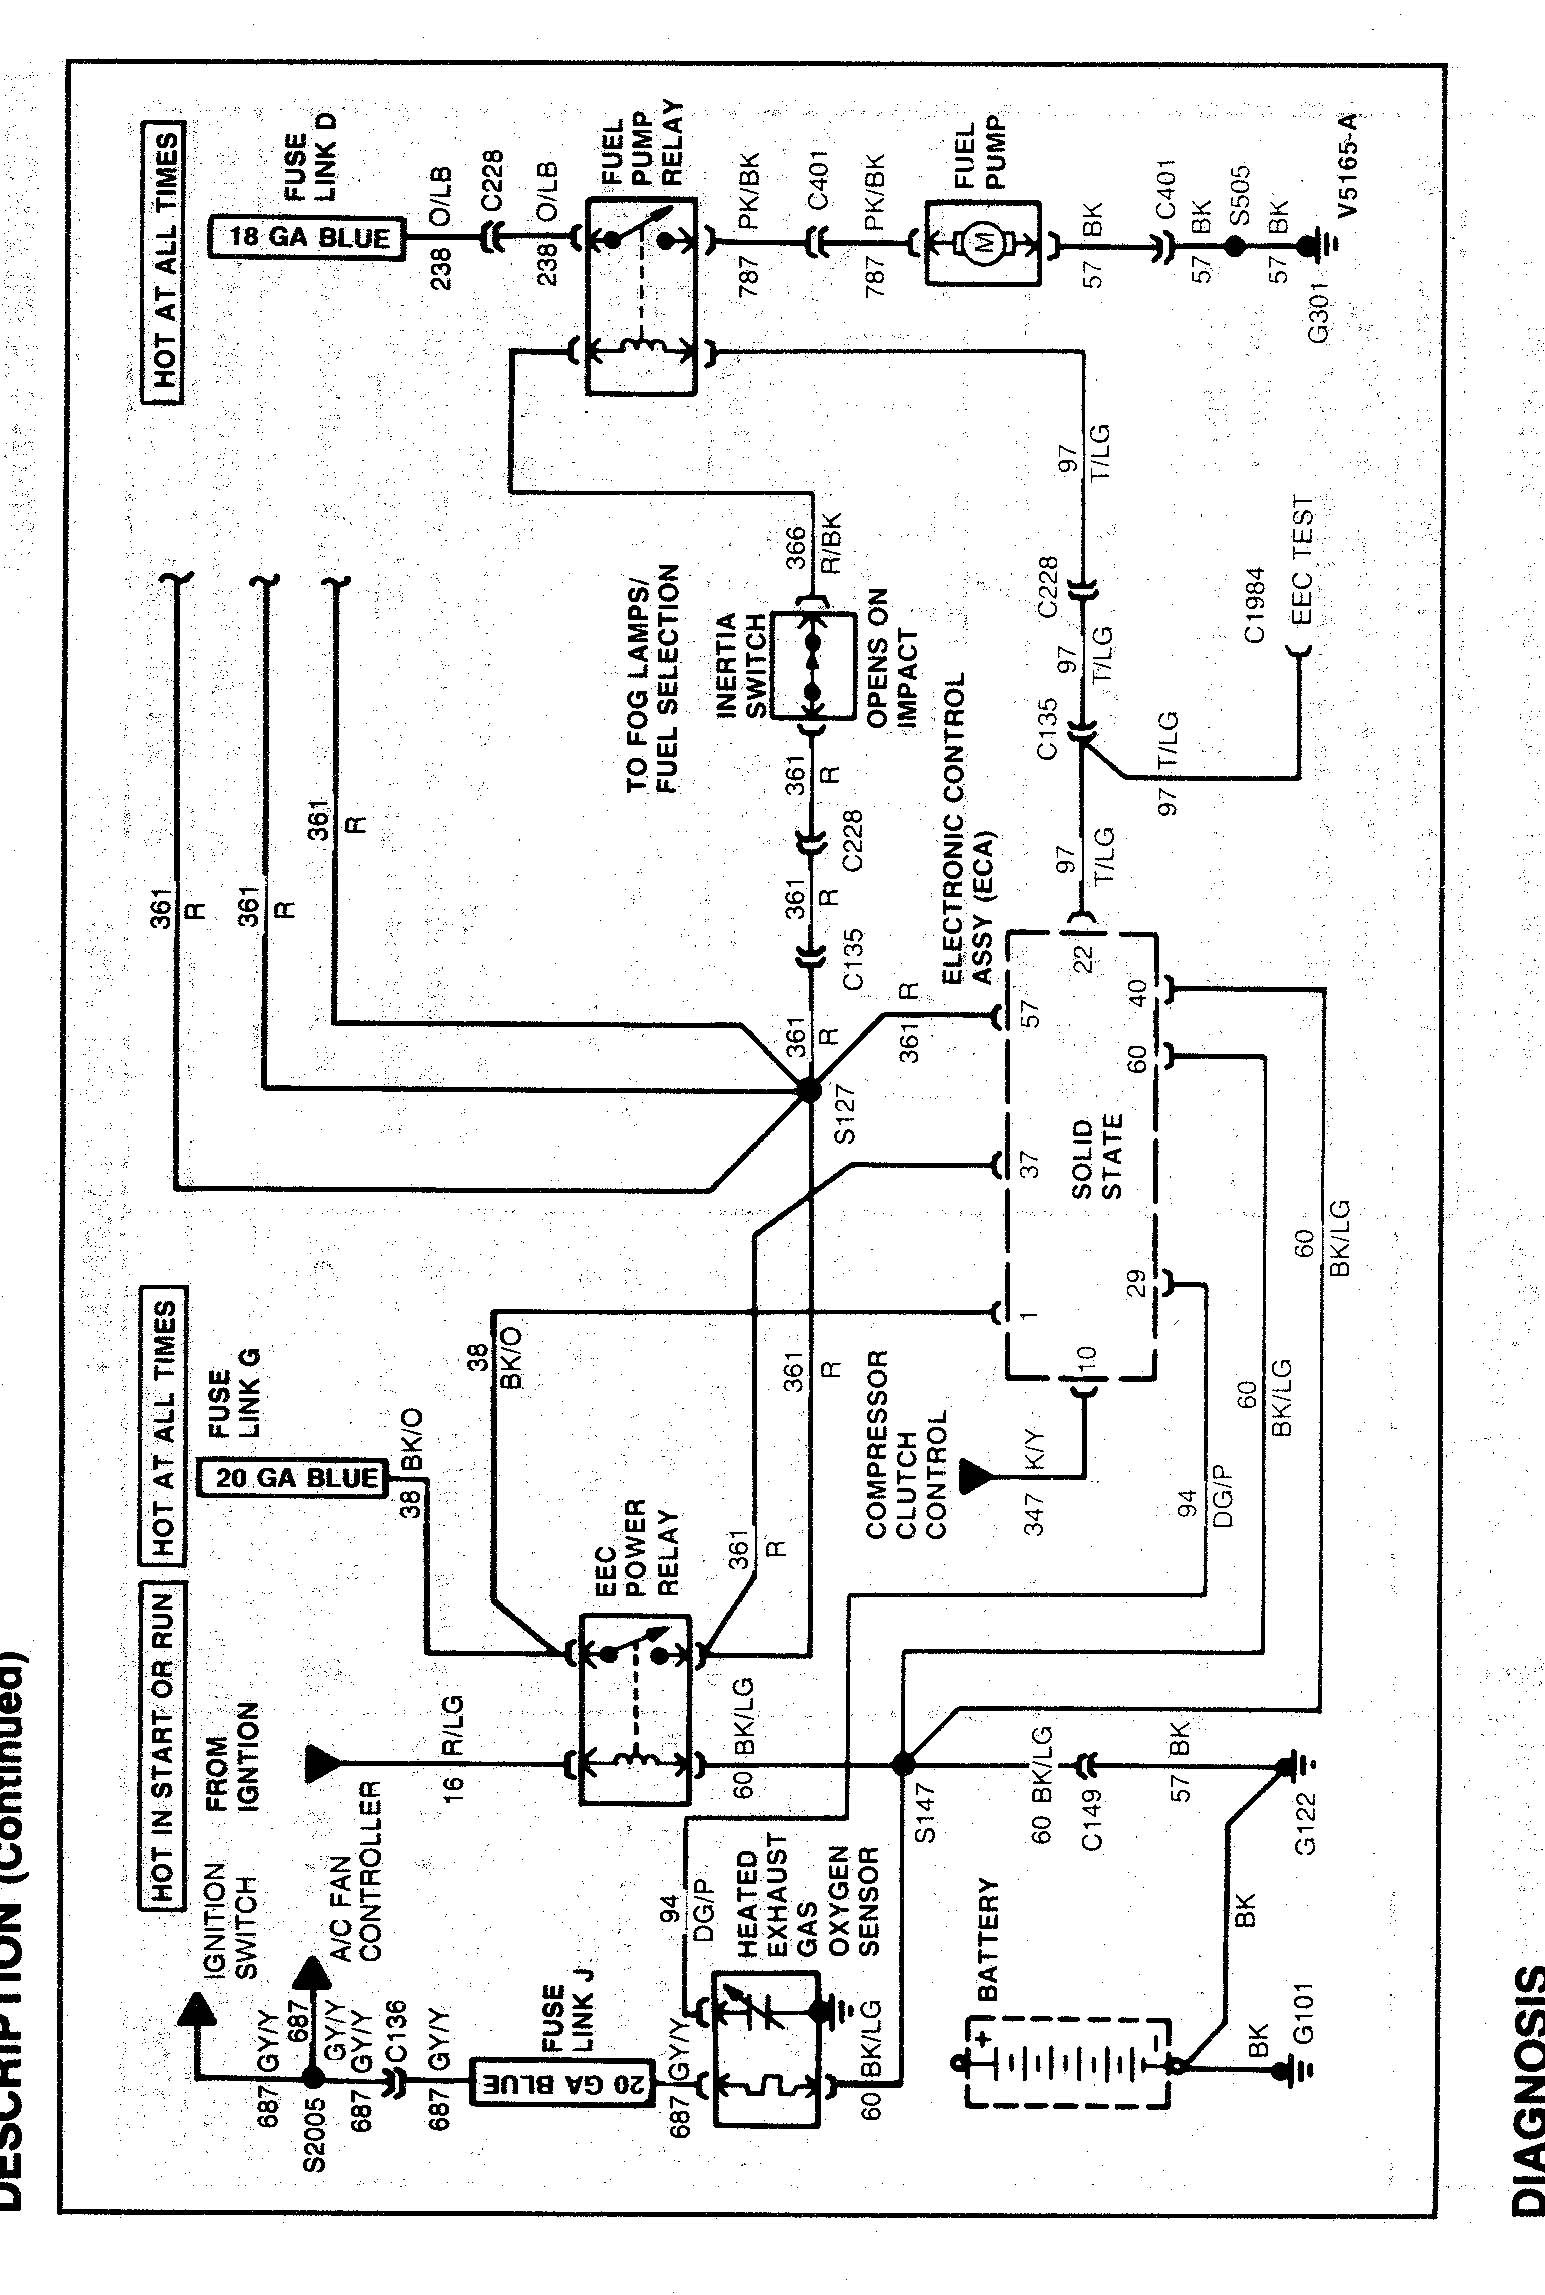 1999 ford taurus fuel pump wiring diagram 1999 ford mustang fuel pump wiring diagram